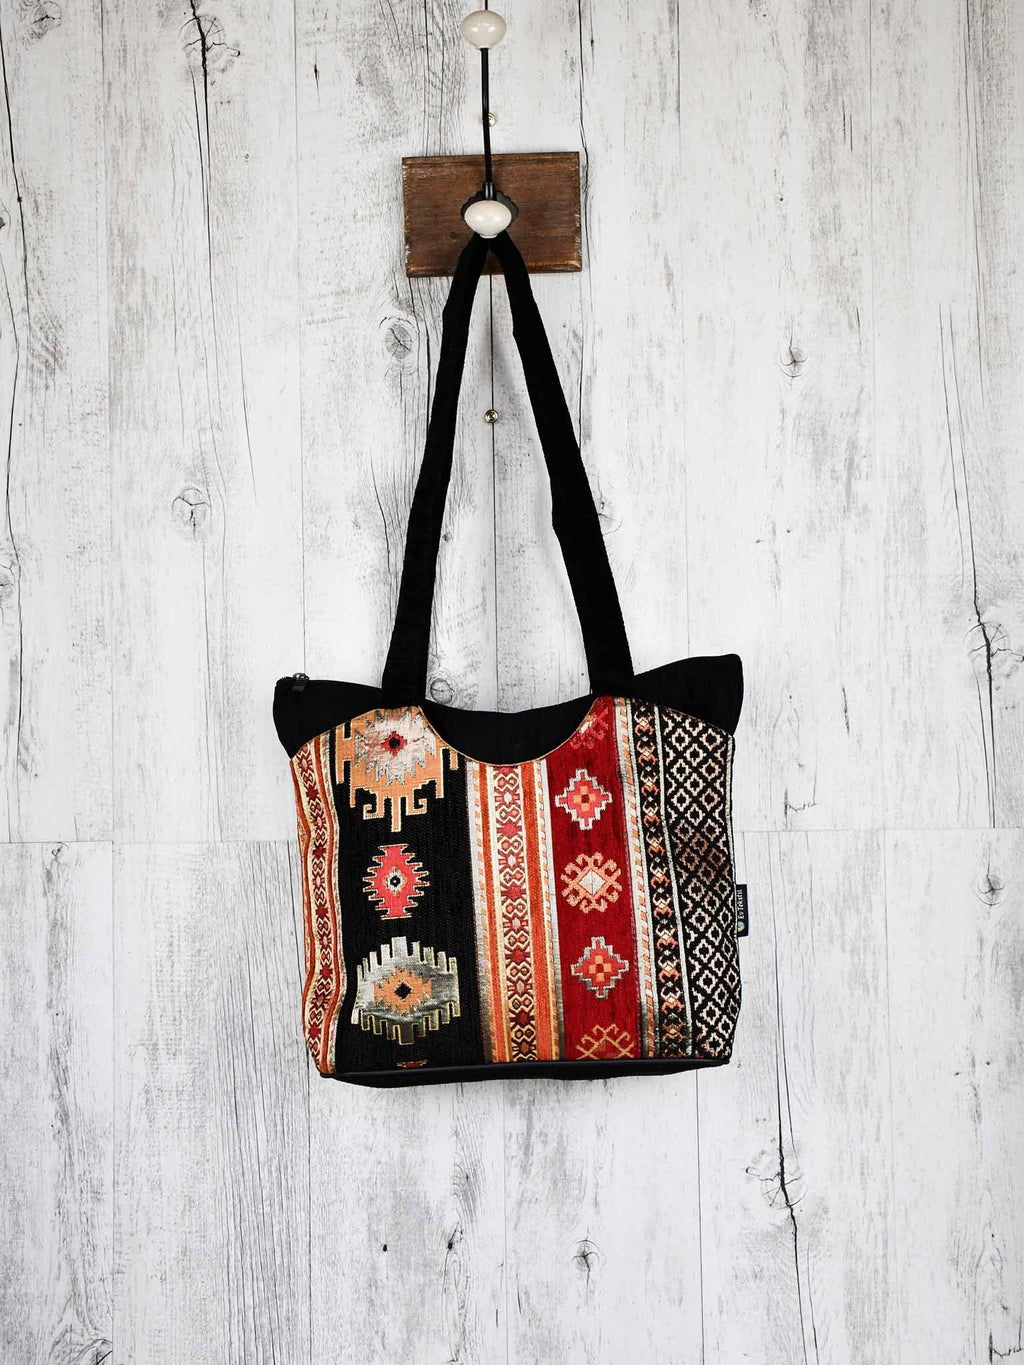 Turkish Handbag Tote Aztec Black Red Textile Sydney Grand Bazaar